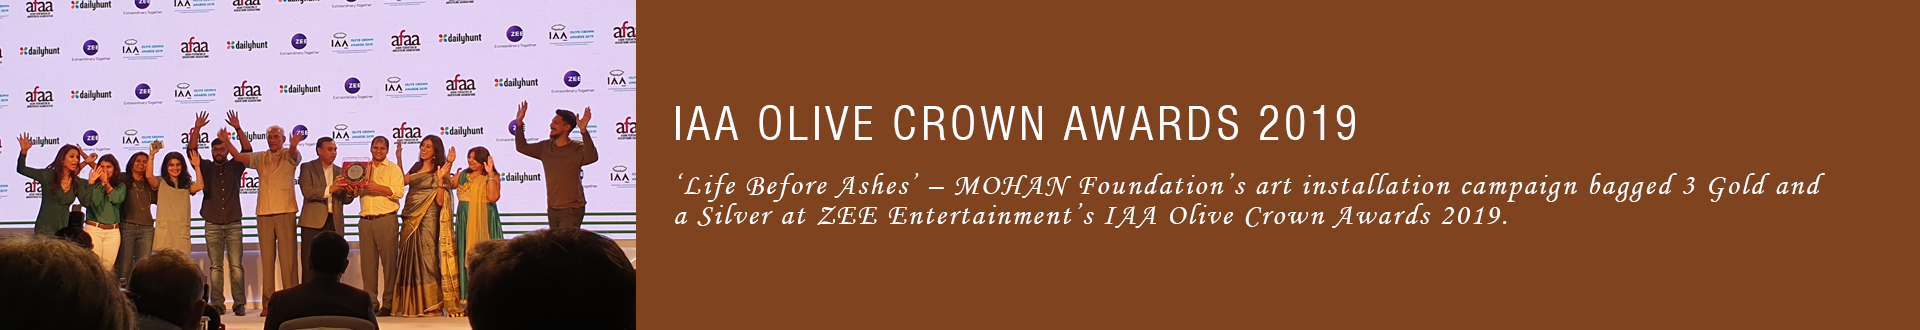 IAA Olive Crown Awards 2019